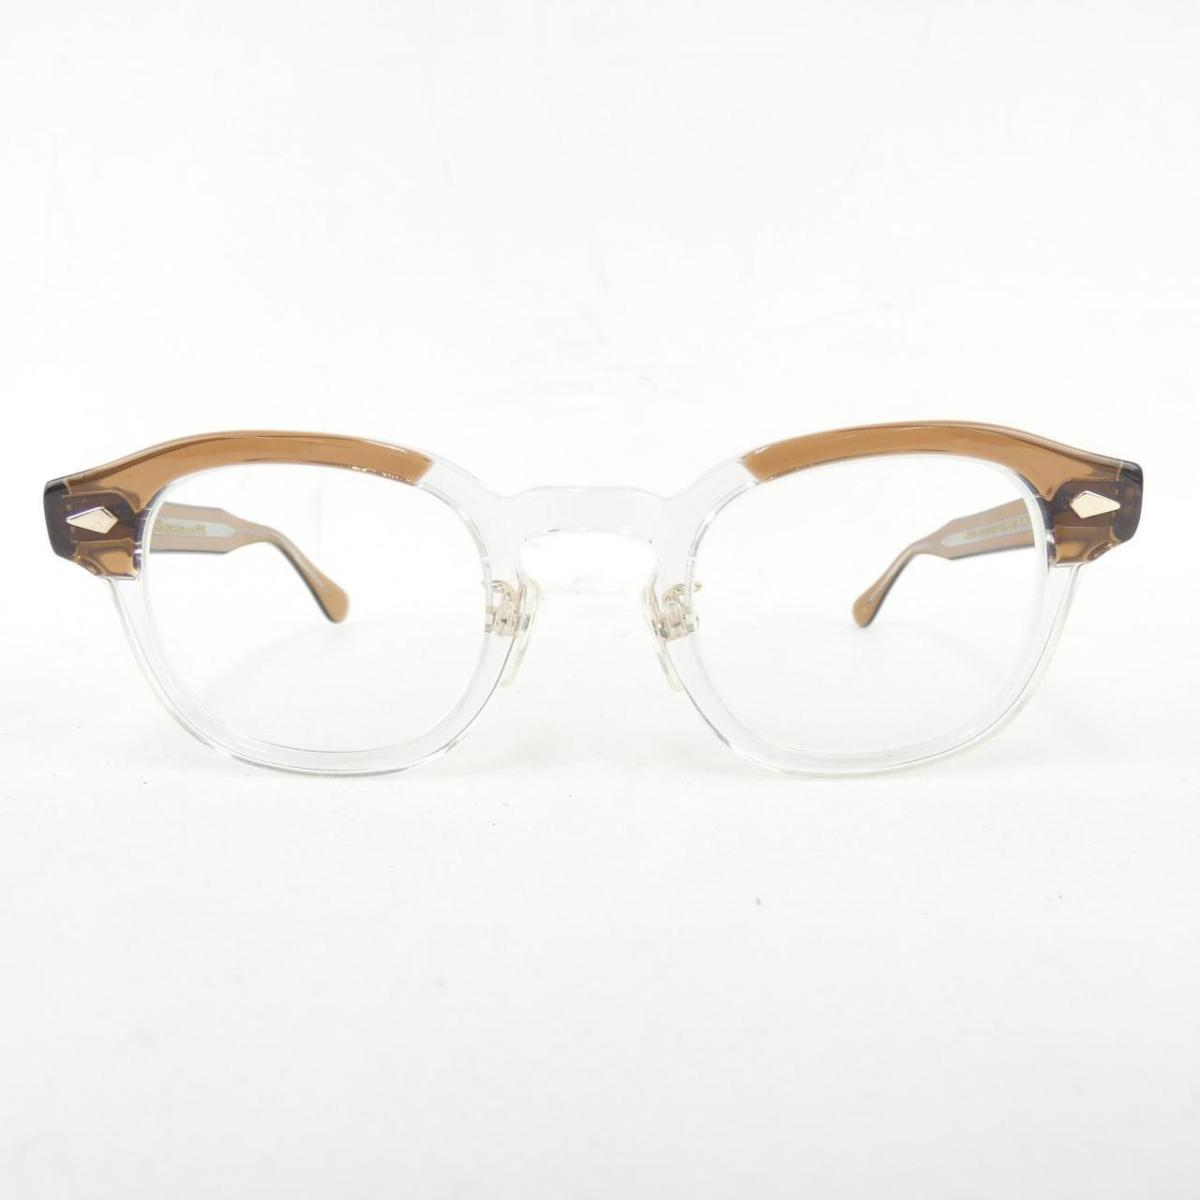 MOSCOT MOSCOT SUNGLASSES LEMTOSH【中古】